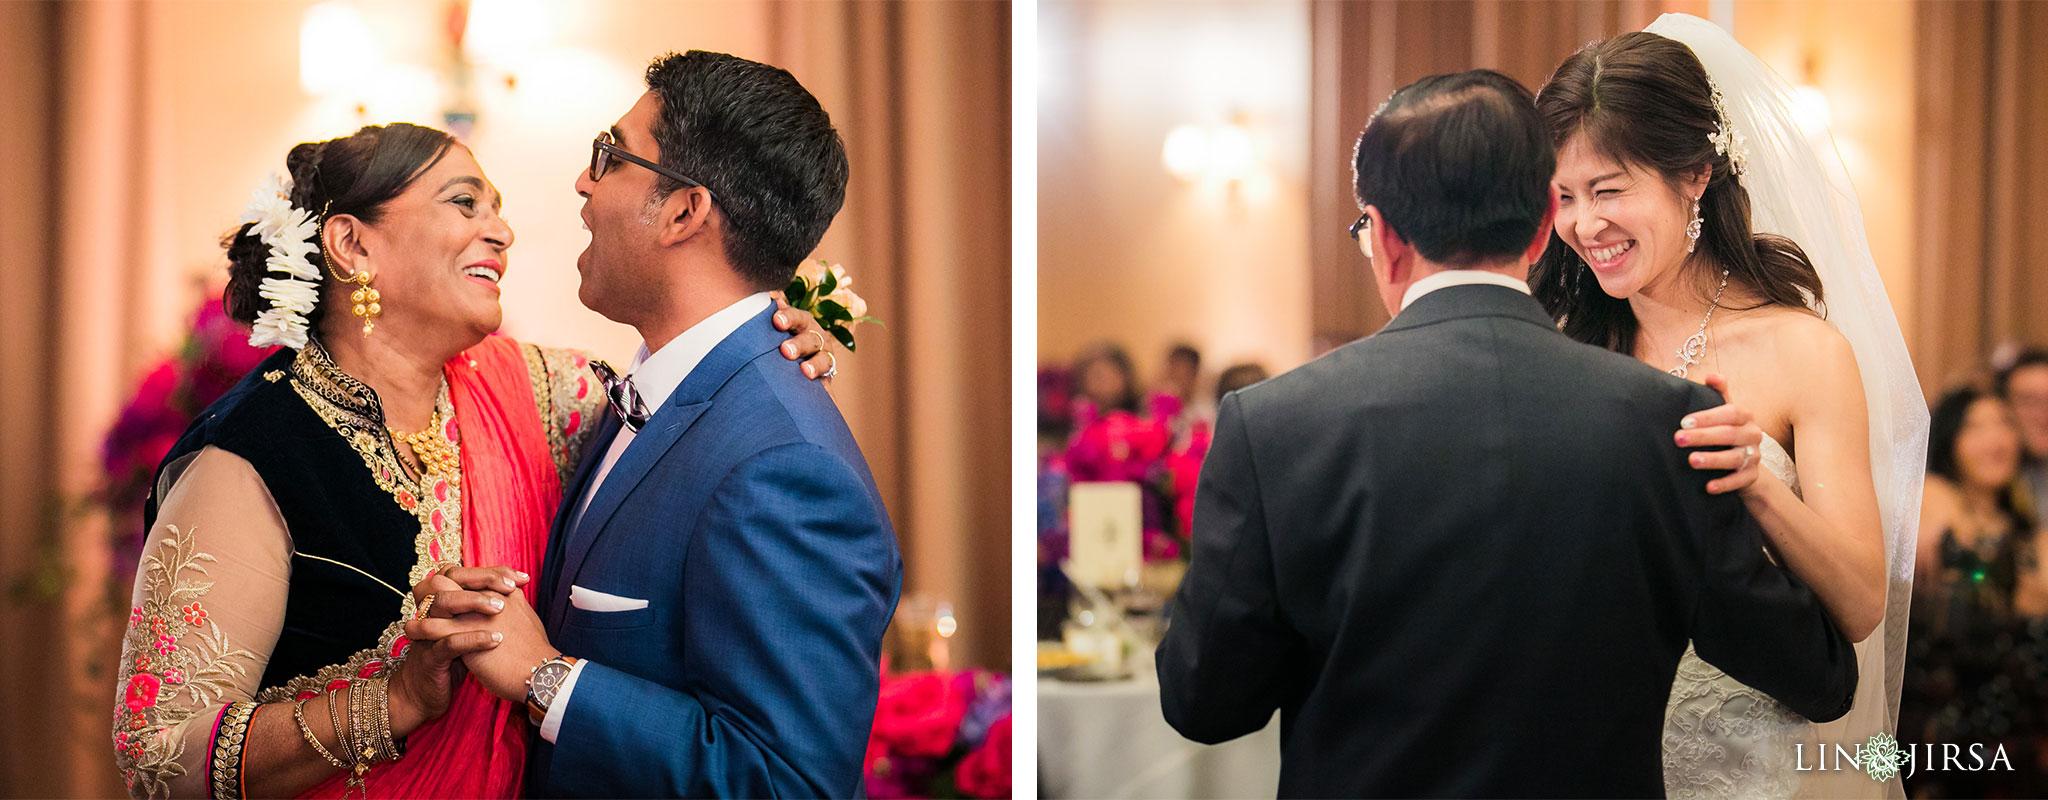 35 the ebell of los angeles indian wedding photography